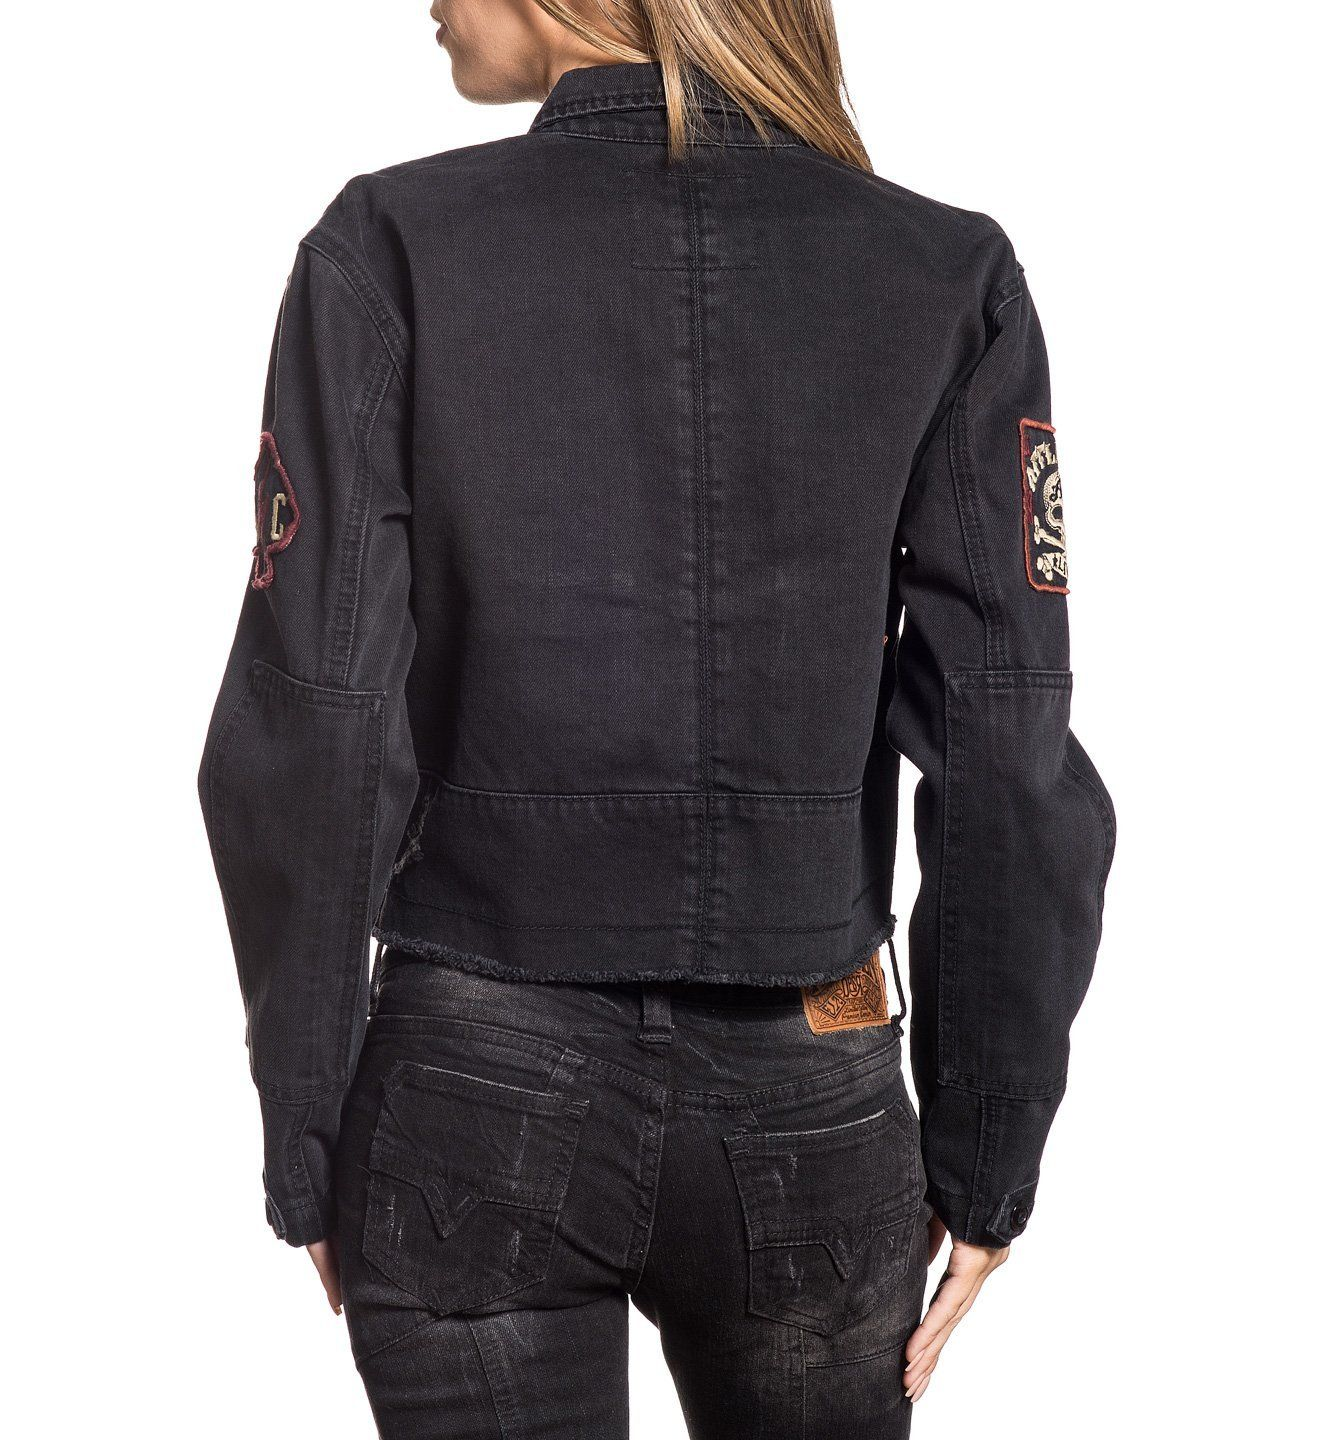 New Level - Womens Jackets - Affliction Clothing